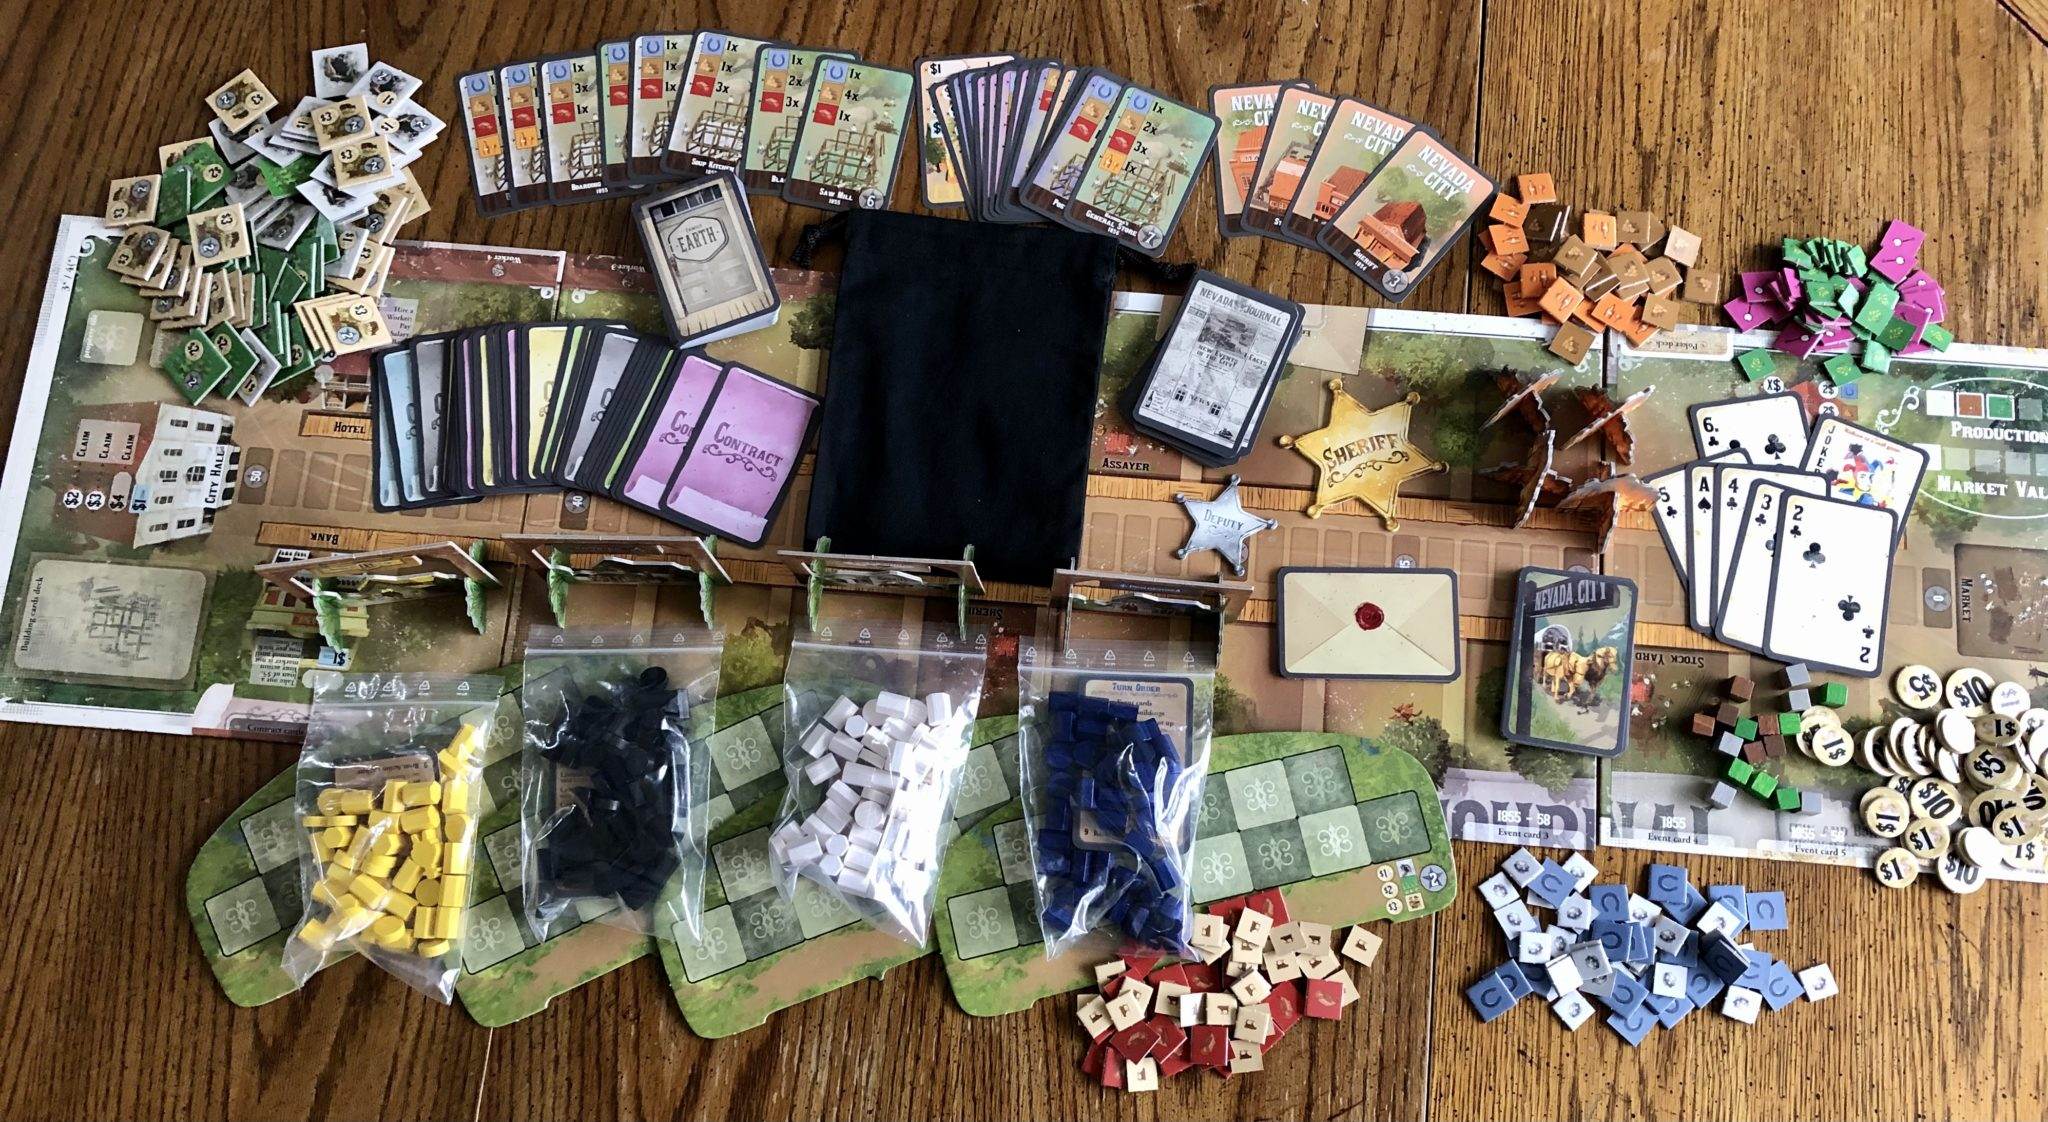 Nevada City components included in the game